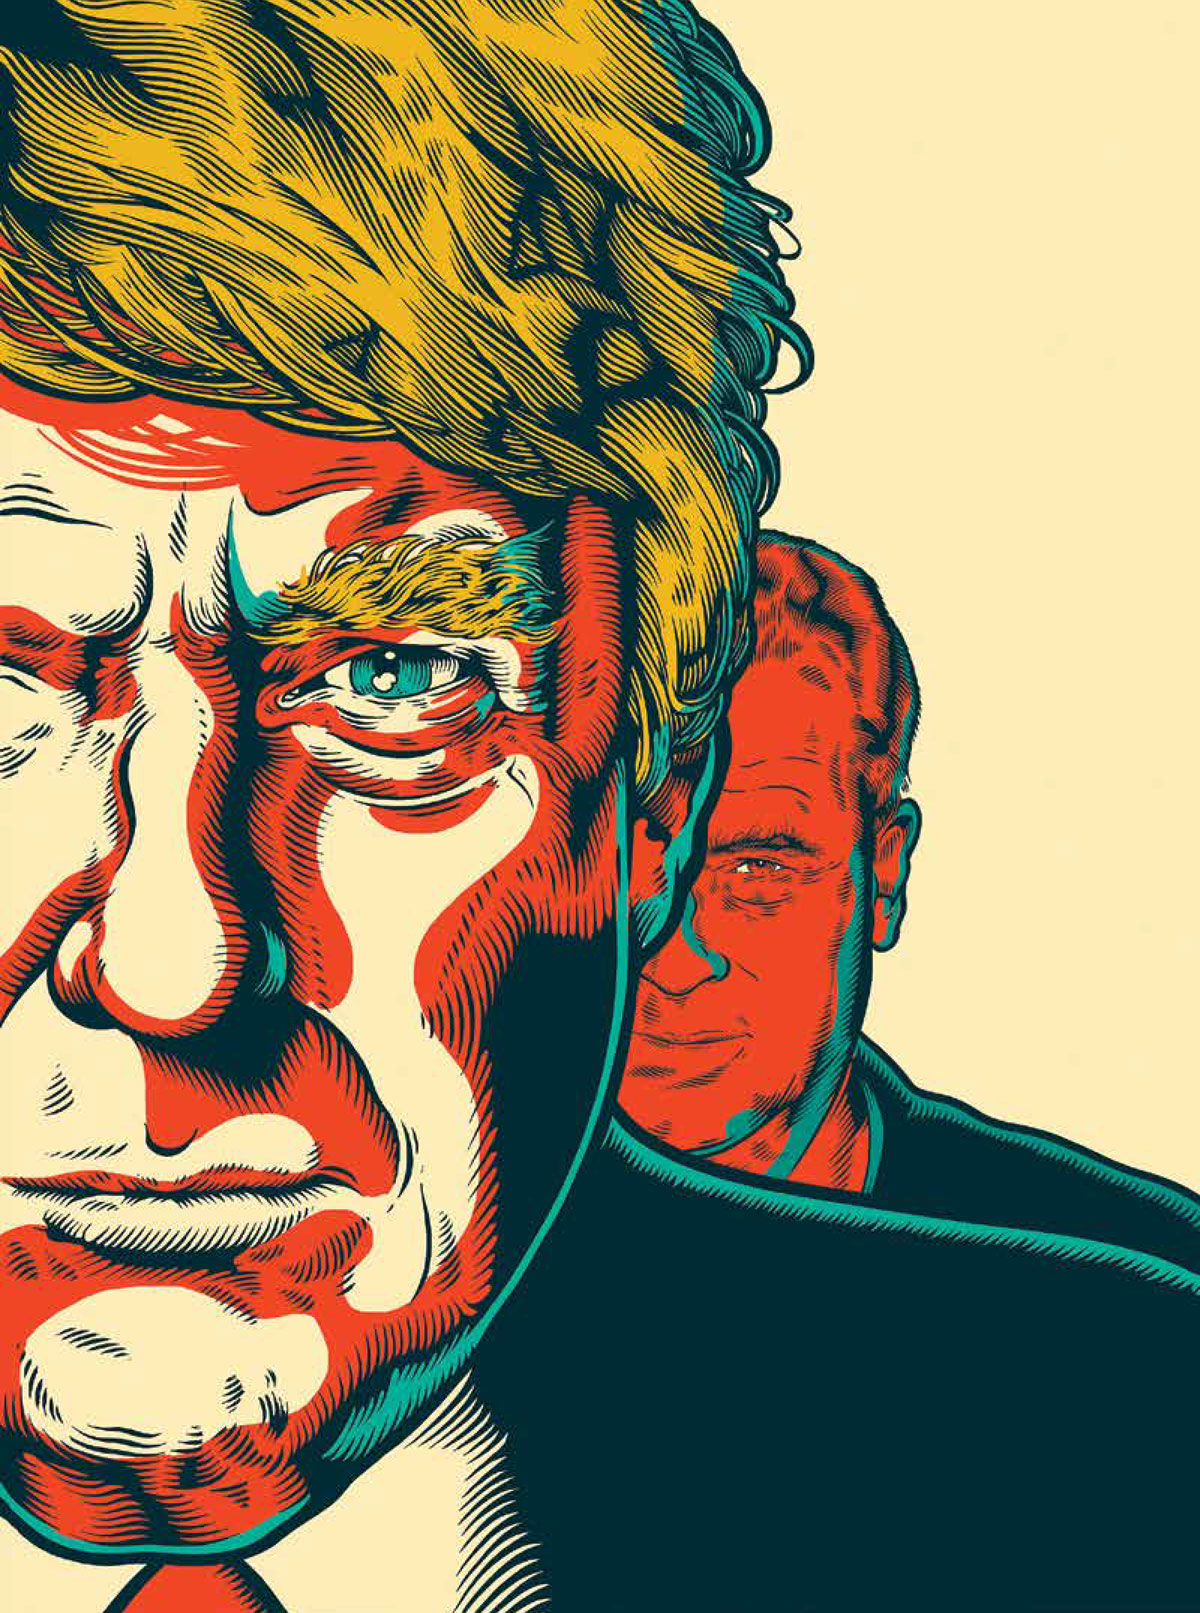 Donald Trump and Robert Mercer. (Illustration by Tim McDonagh)